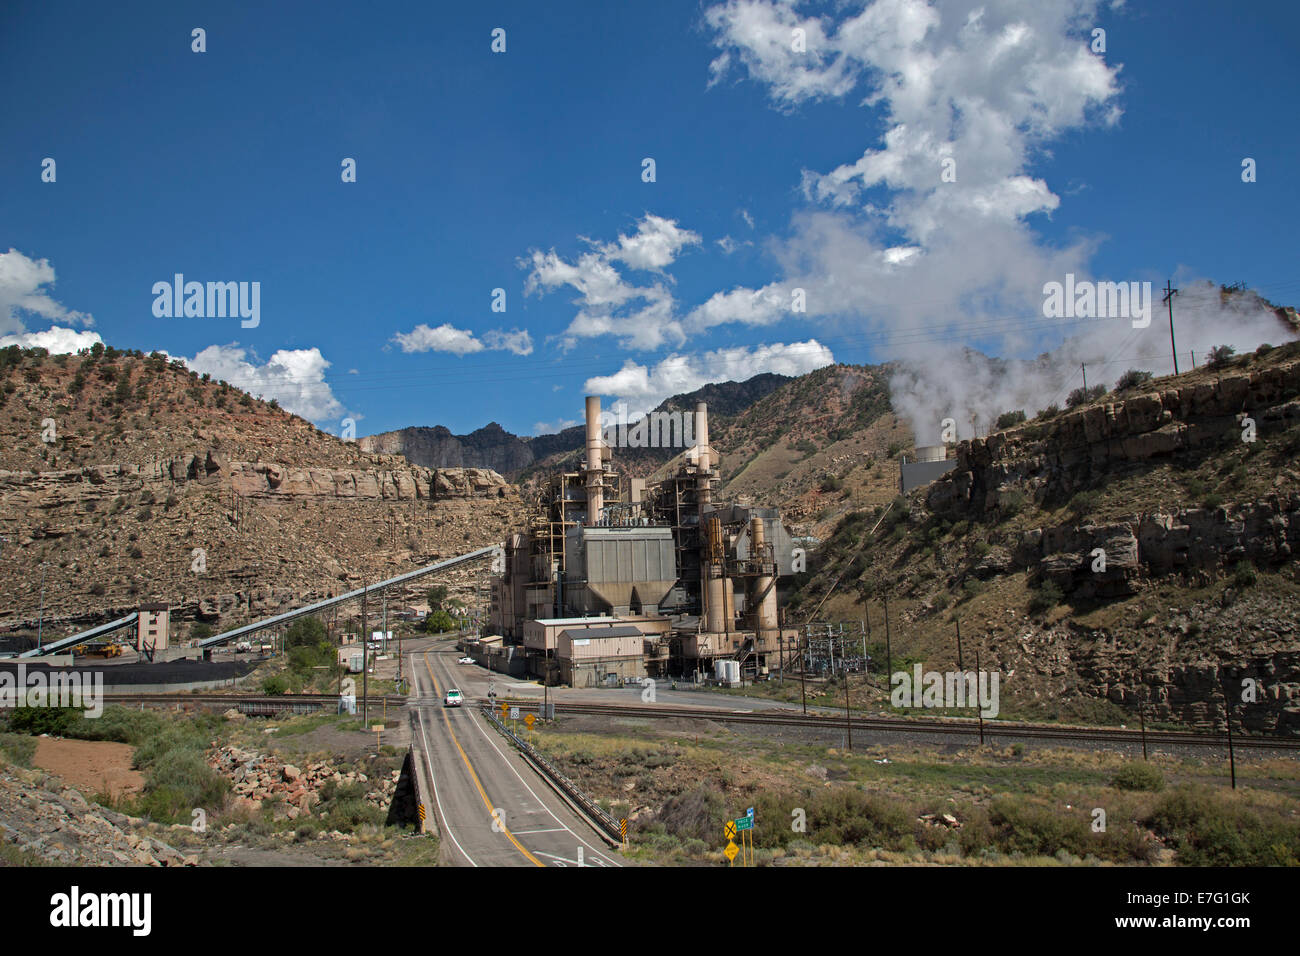 Helper, Utah - PacifiCorp's Carbon Power Plant generates electricity by burning coal from local coal mines. - Stock Image